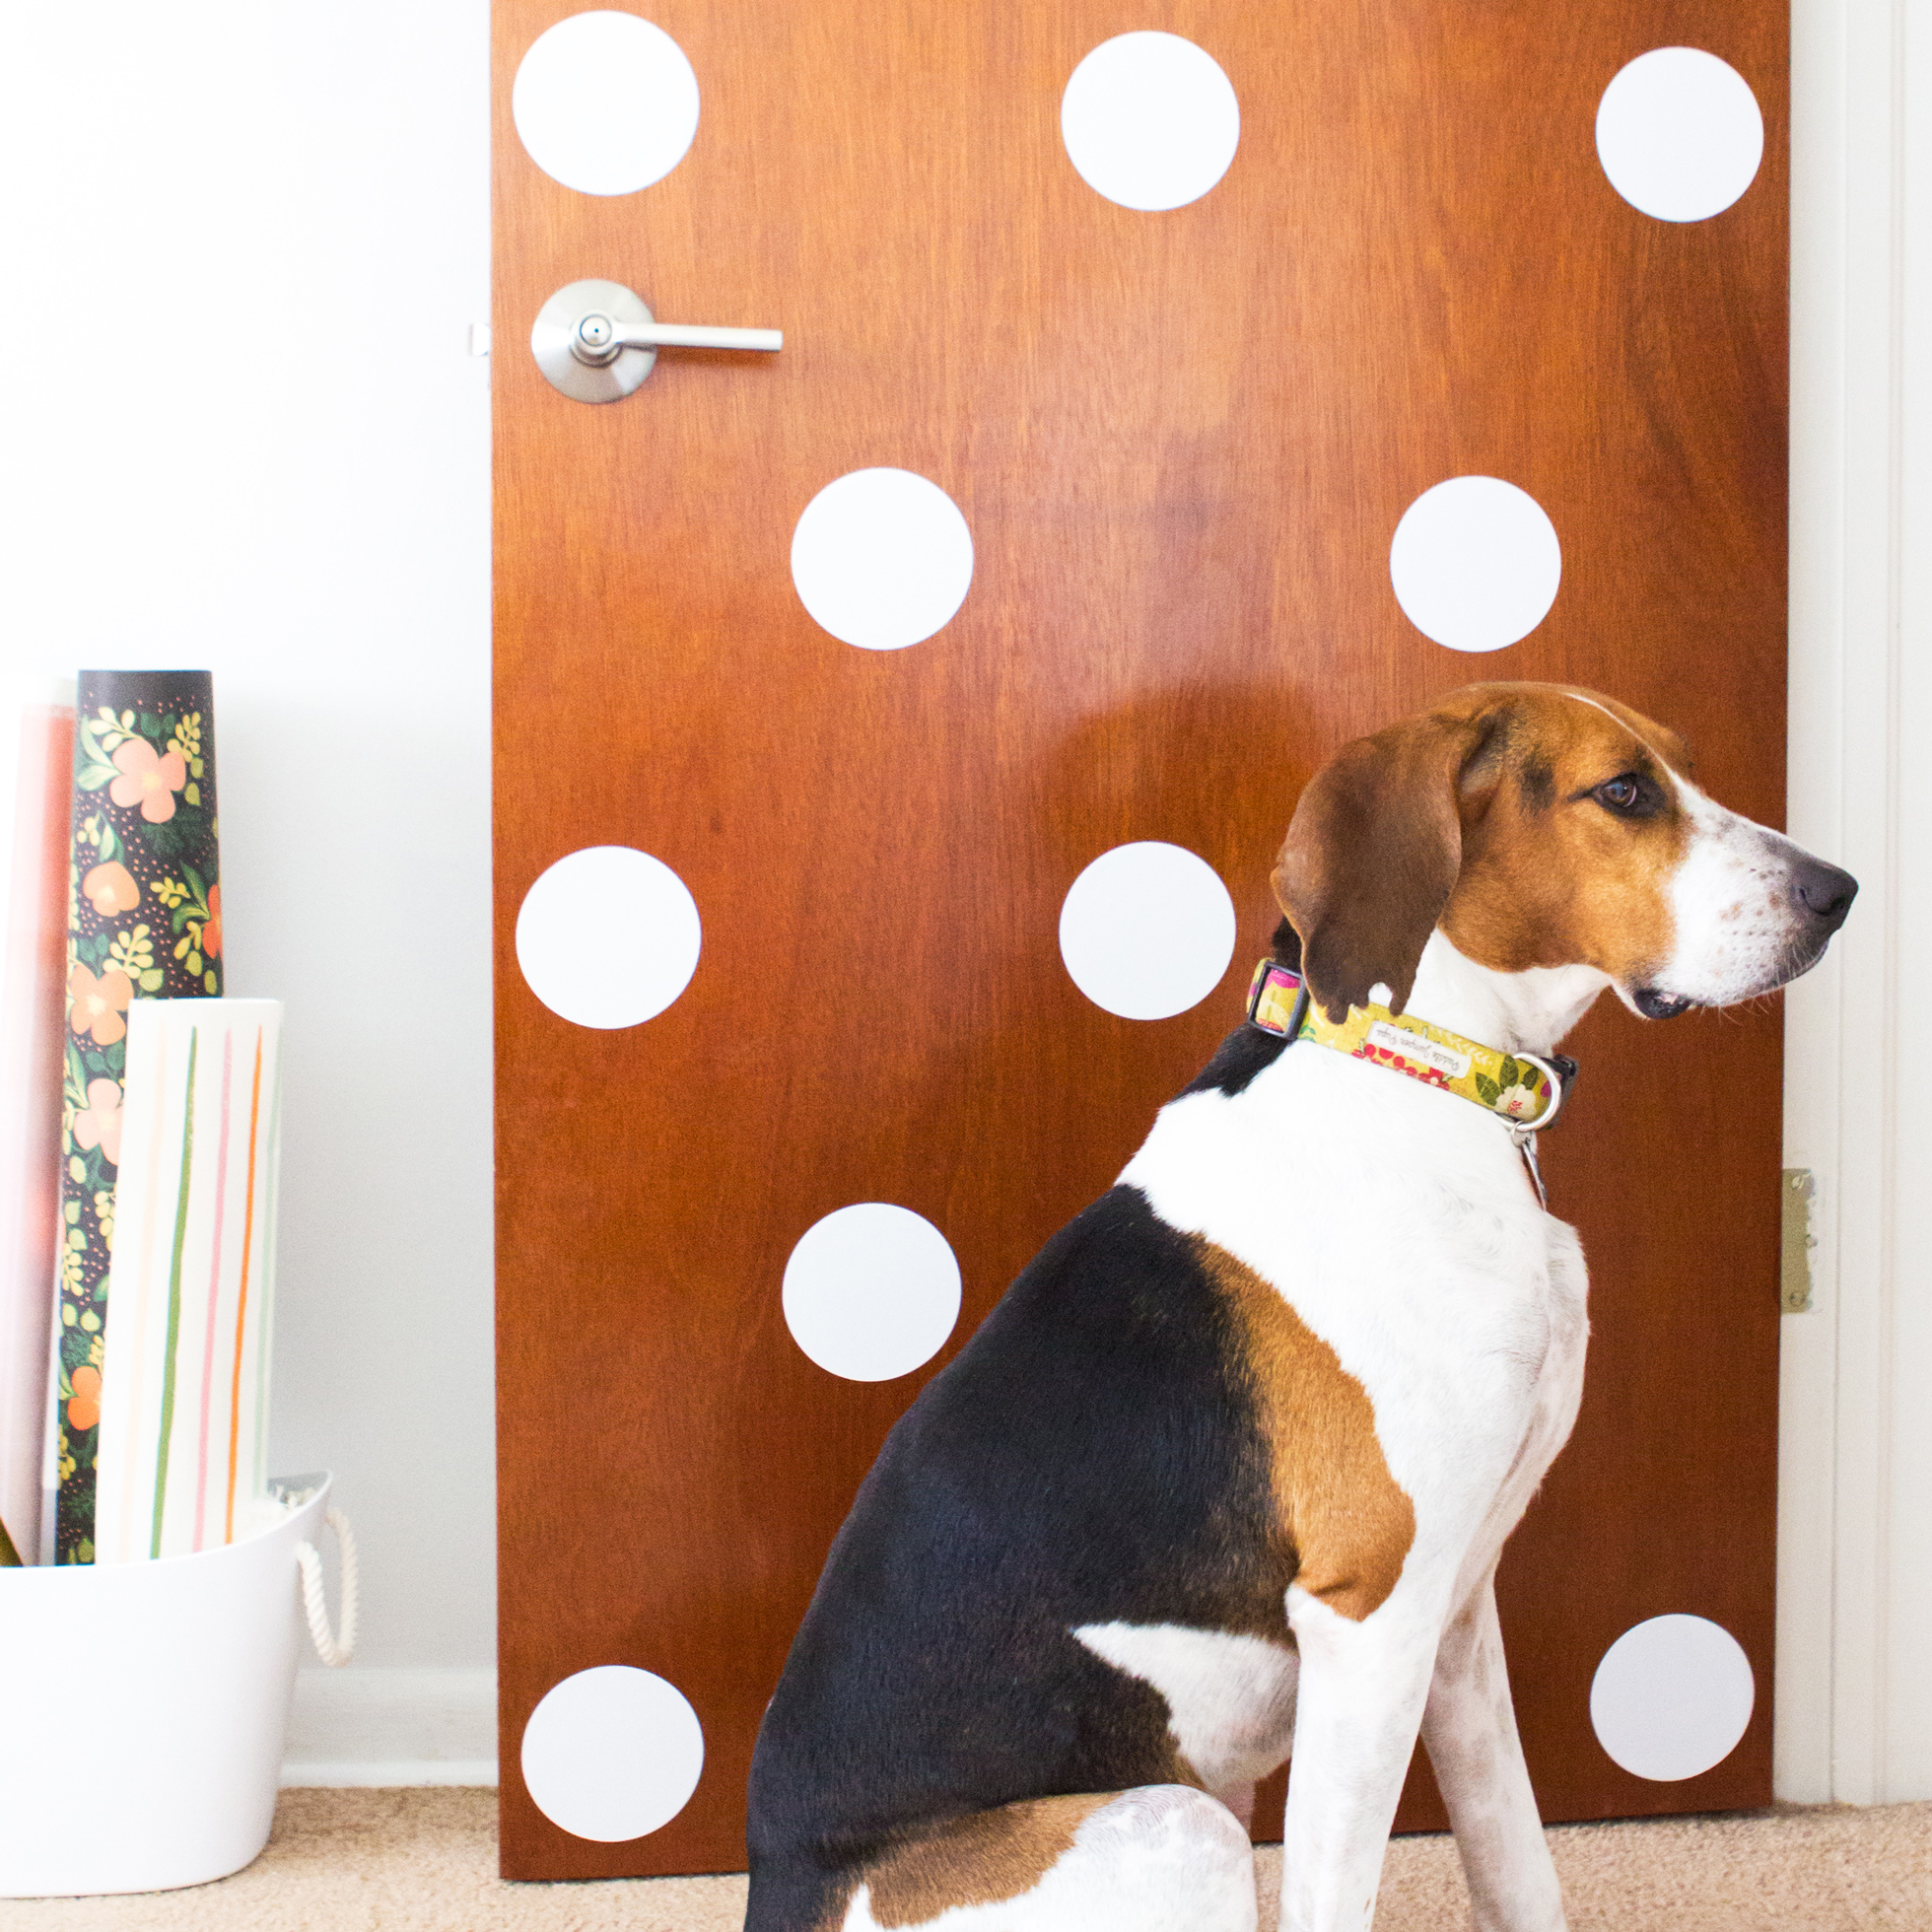 White polka dot decals on a wood door